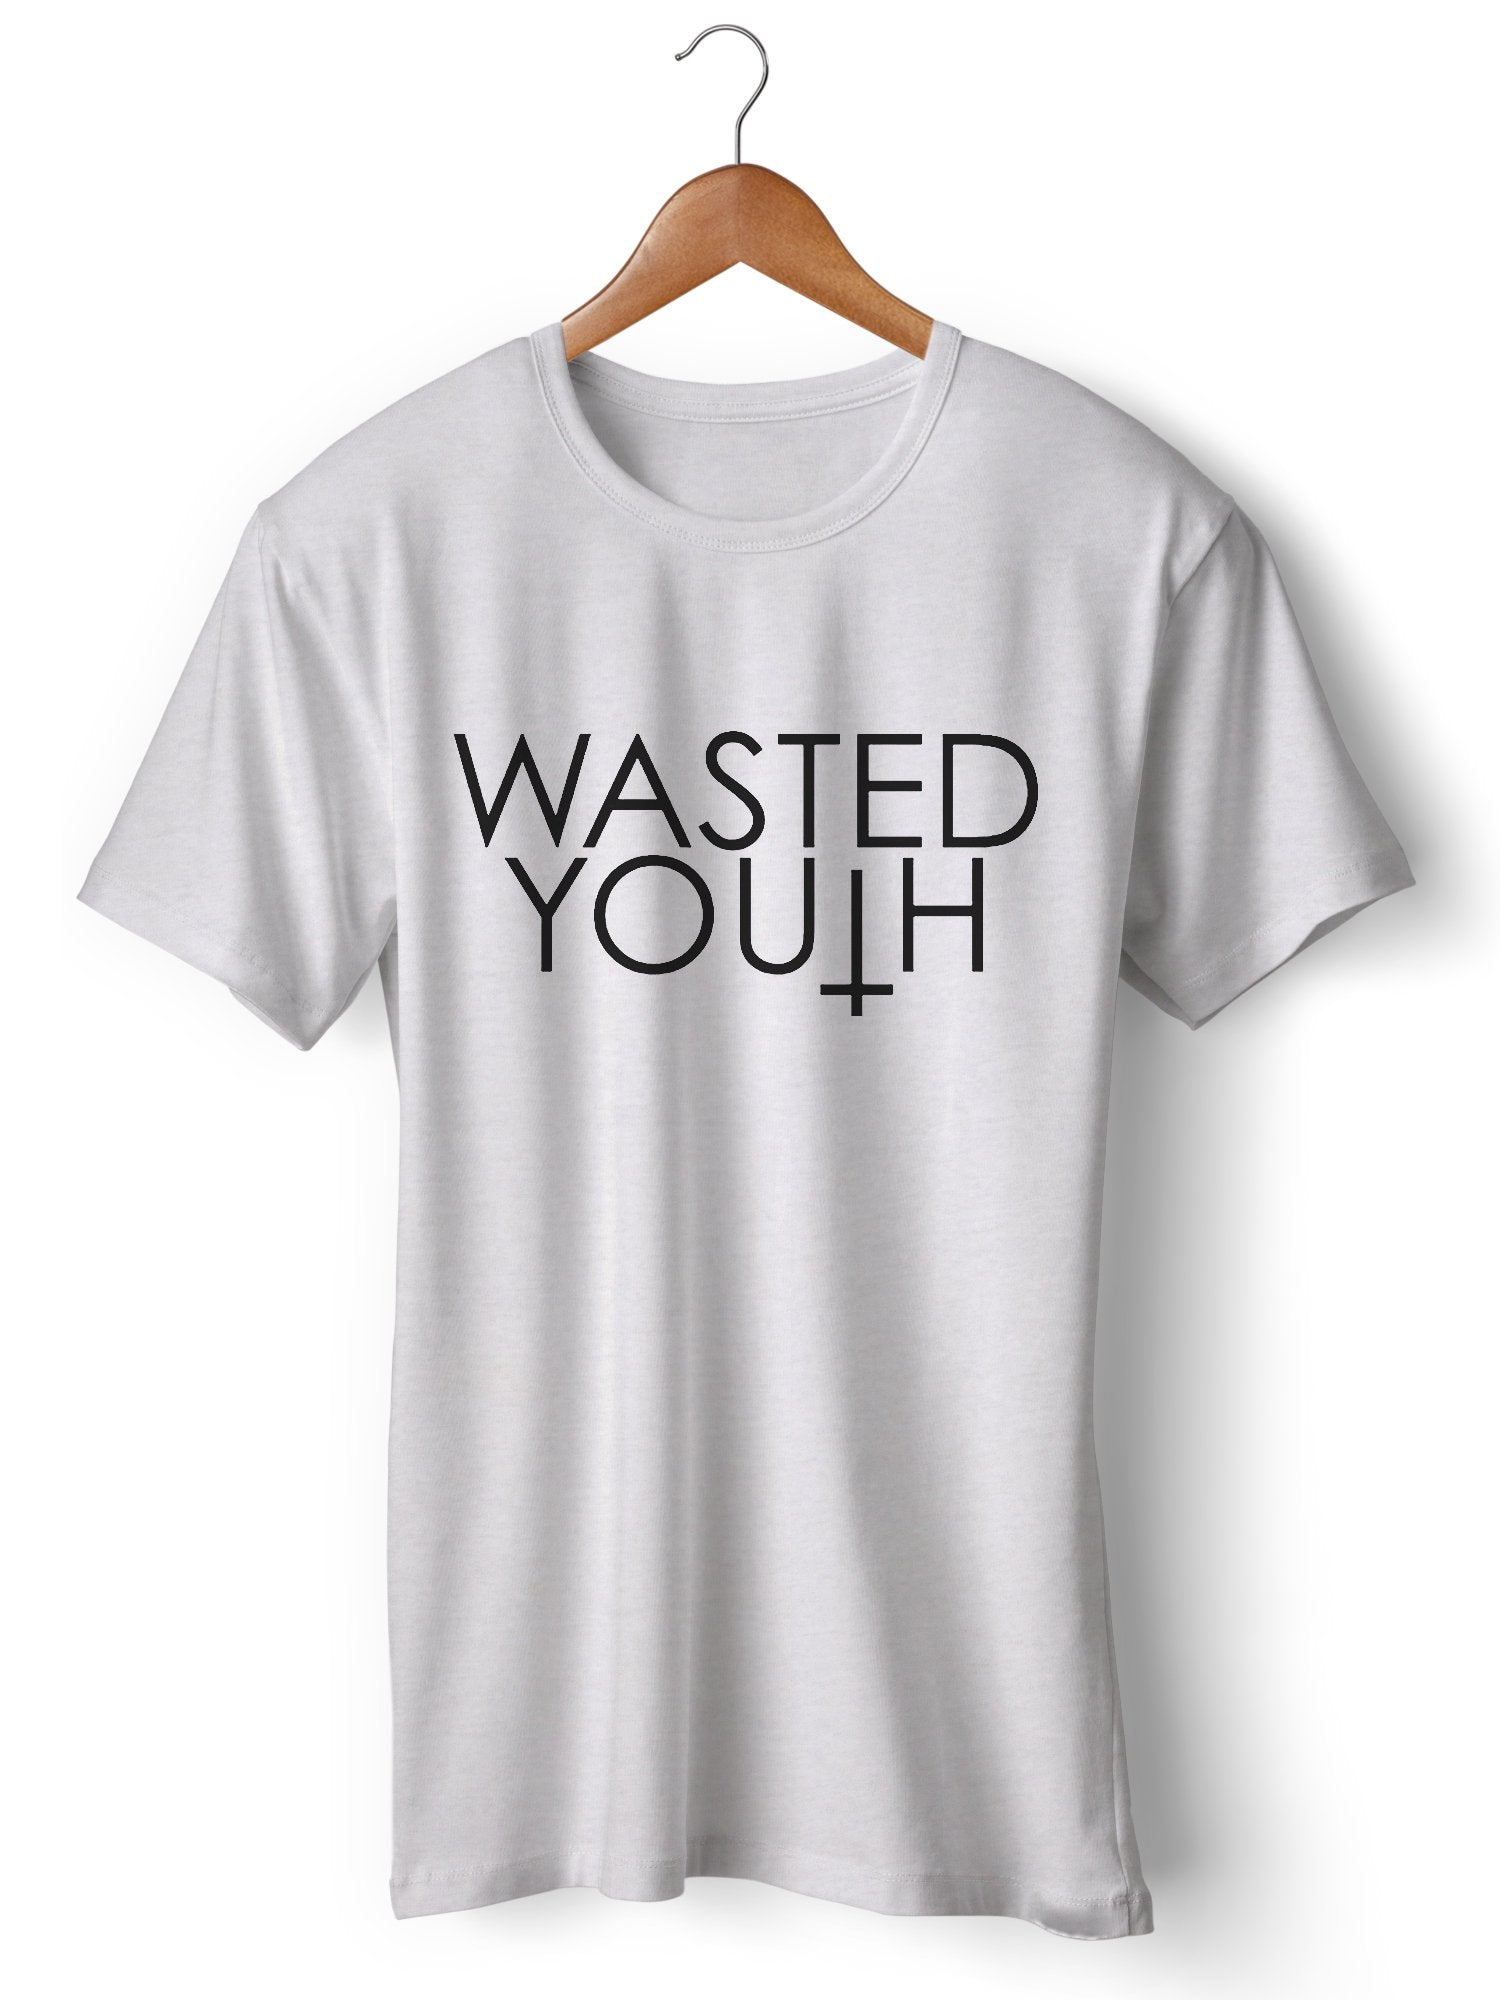 Wasted Youth Premium Mens T-Shirt